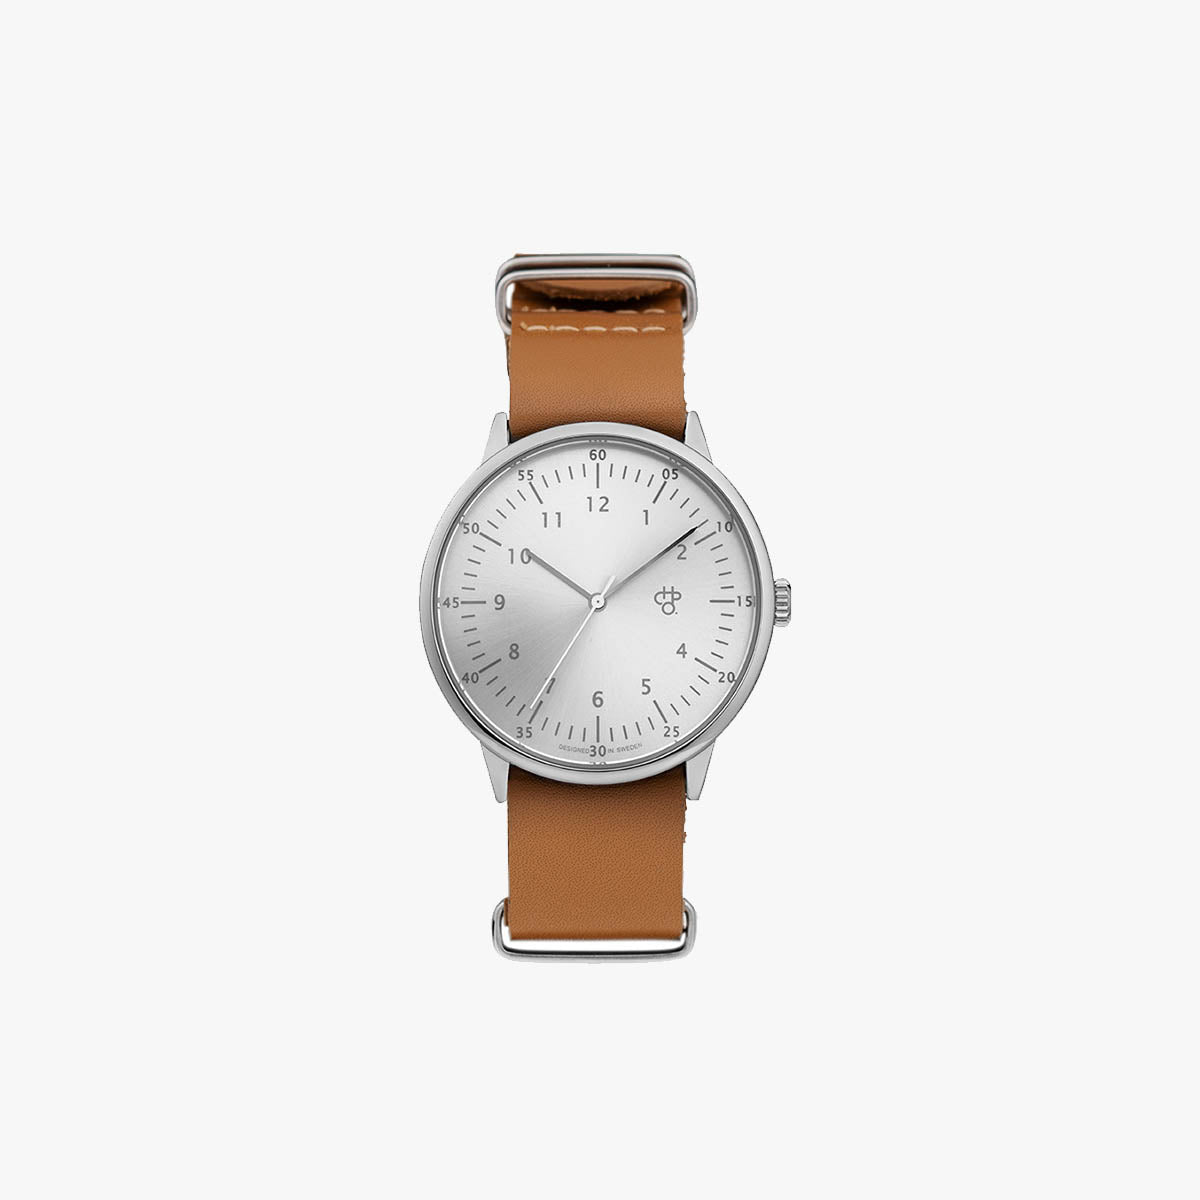 CHPO Watch Harold Silver Brown Leather Strap bali indonesia